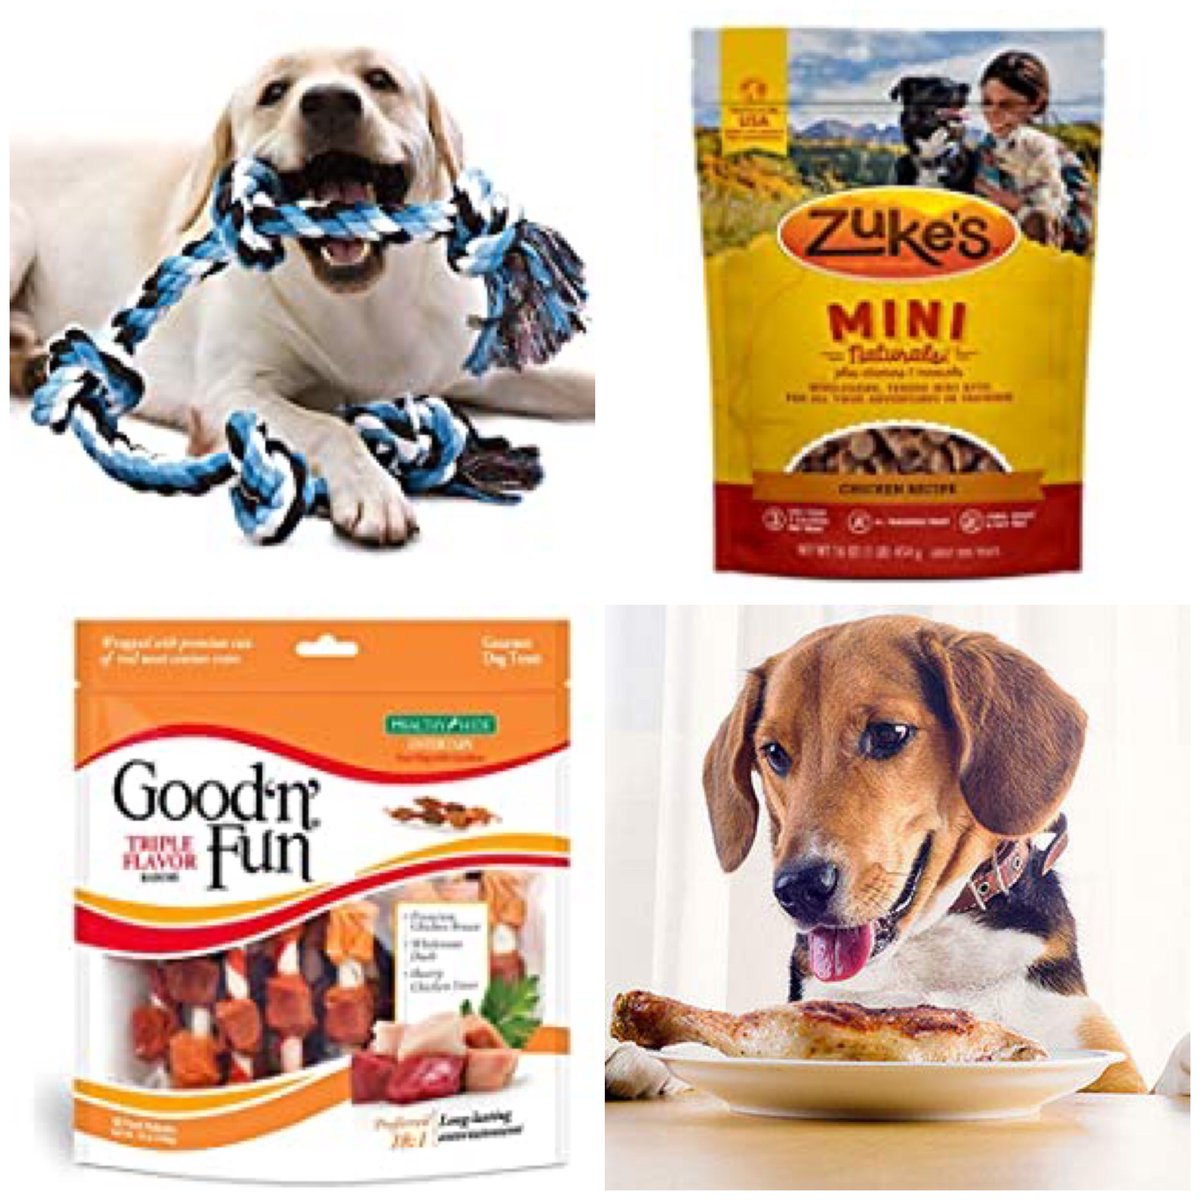 Treats - Dogs: Pet Supplies: Cookies, Biscuits & Snacks, Rawhide, Bones, Jerky,  Bully Sticks & More   👉 https://t.co/vv0tJR8FQ3  🇺🇸  Amazon  #dog #pet #petsupplies #dogs   #doglife  #doglove  Click here for pet supplies 👉  https://t.co/kOgMz2AAFA https://t.co/L3V1rAptNt